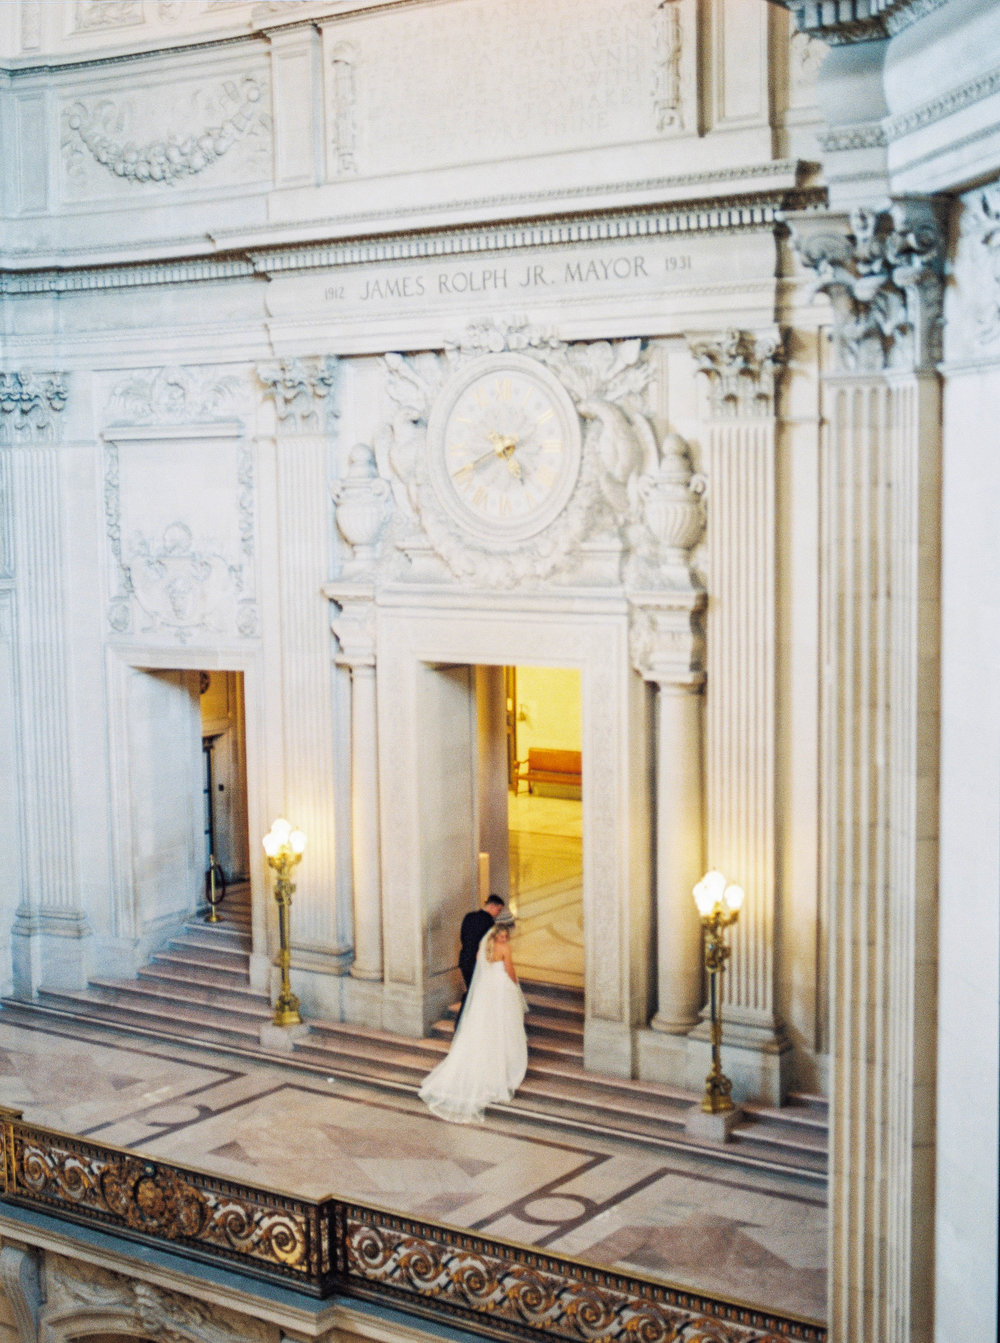 DennisRoyCoronel_Photography_SanFranciscoCityHall_Wedding-85.jpg